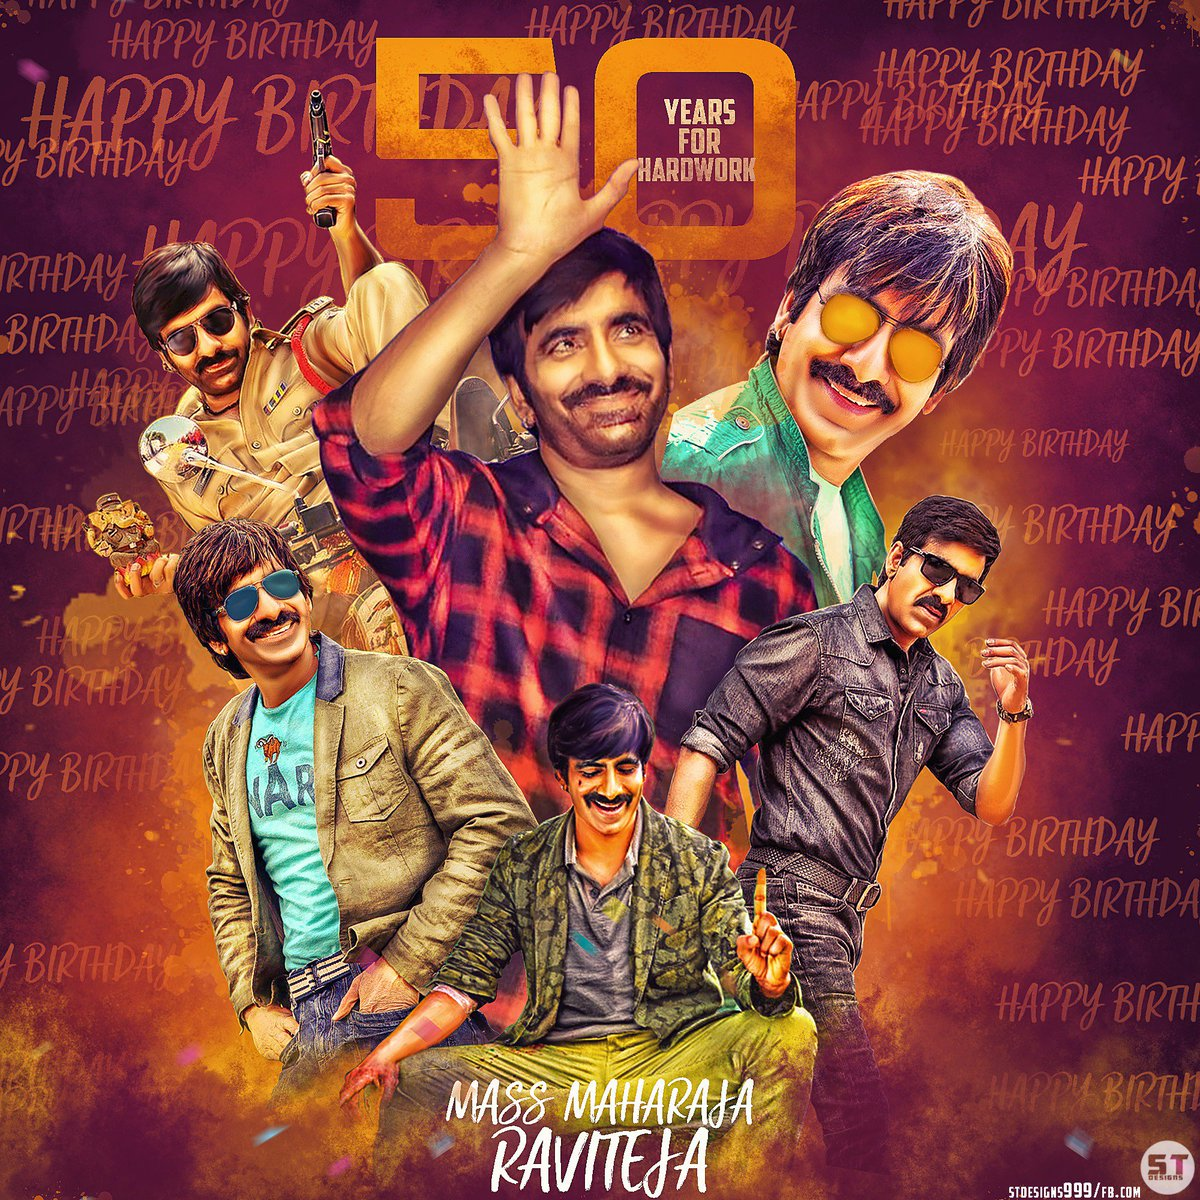 Age is just a number for Ravi Teja, the actor turns 50